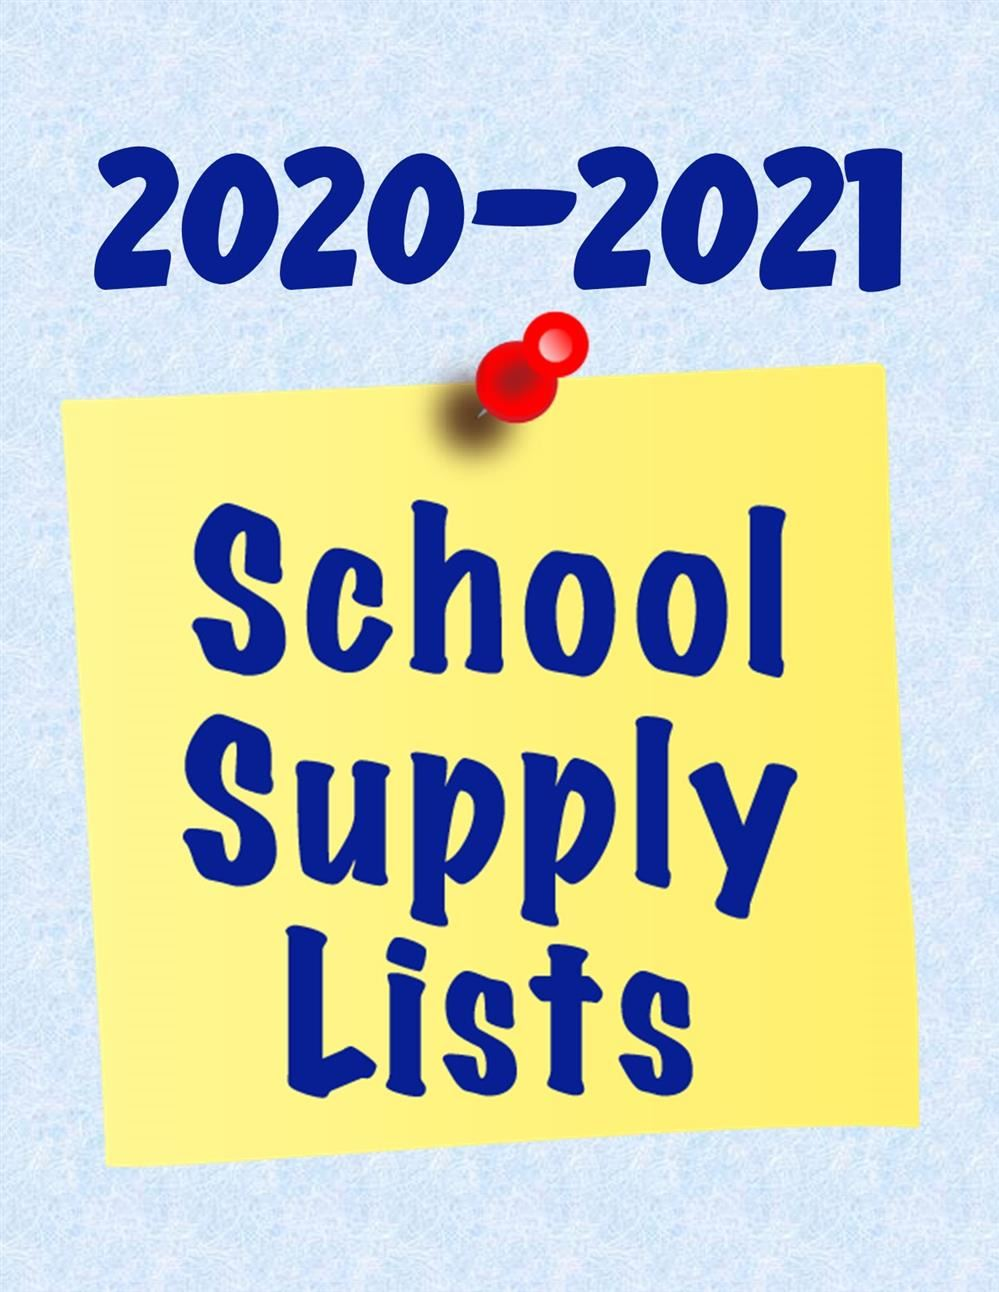 2020-2021 NEWTON SCHOOL SUPPLY LISTS